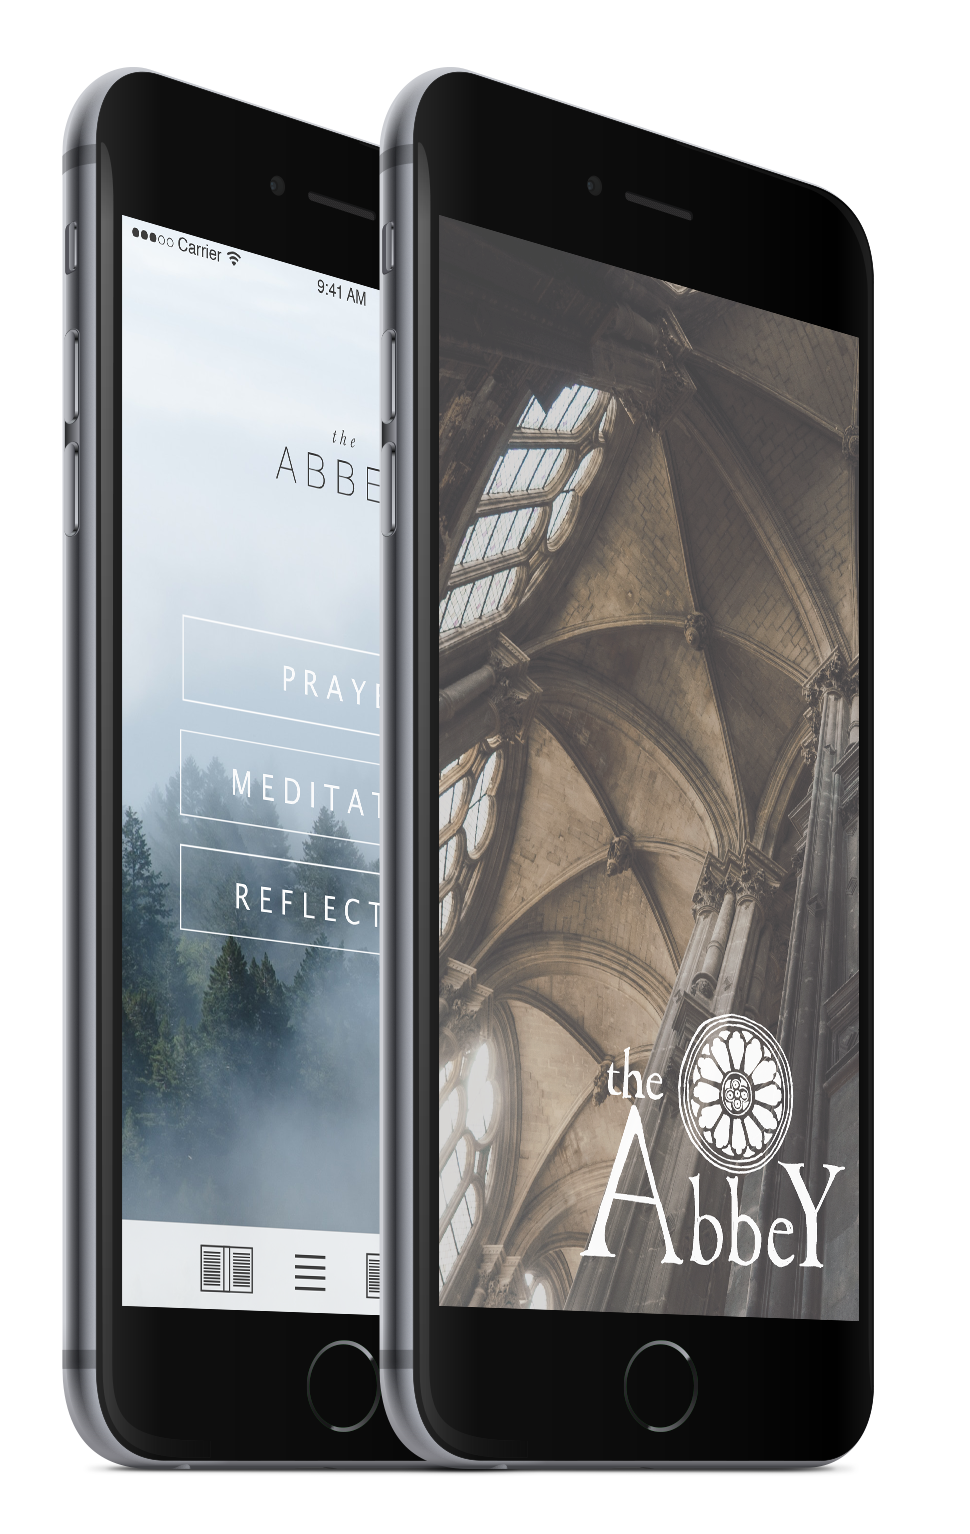 abbey_app_intro.png